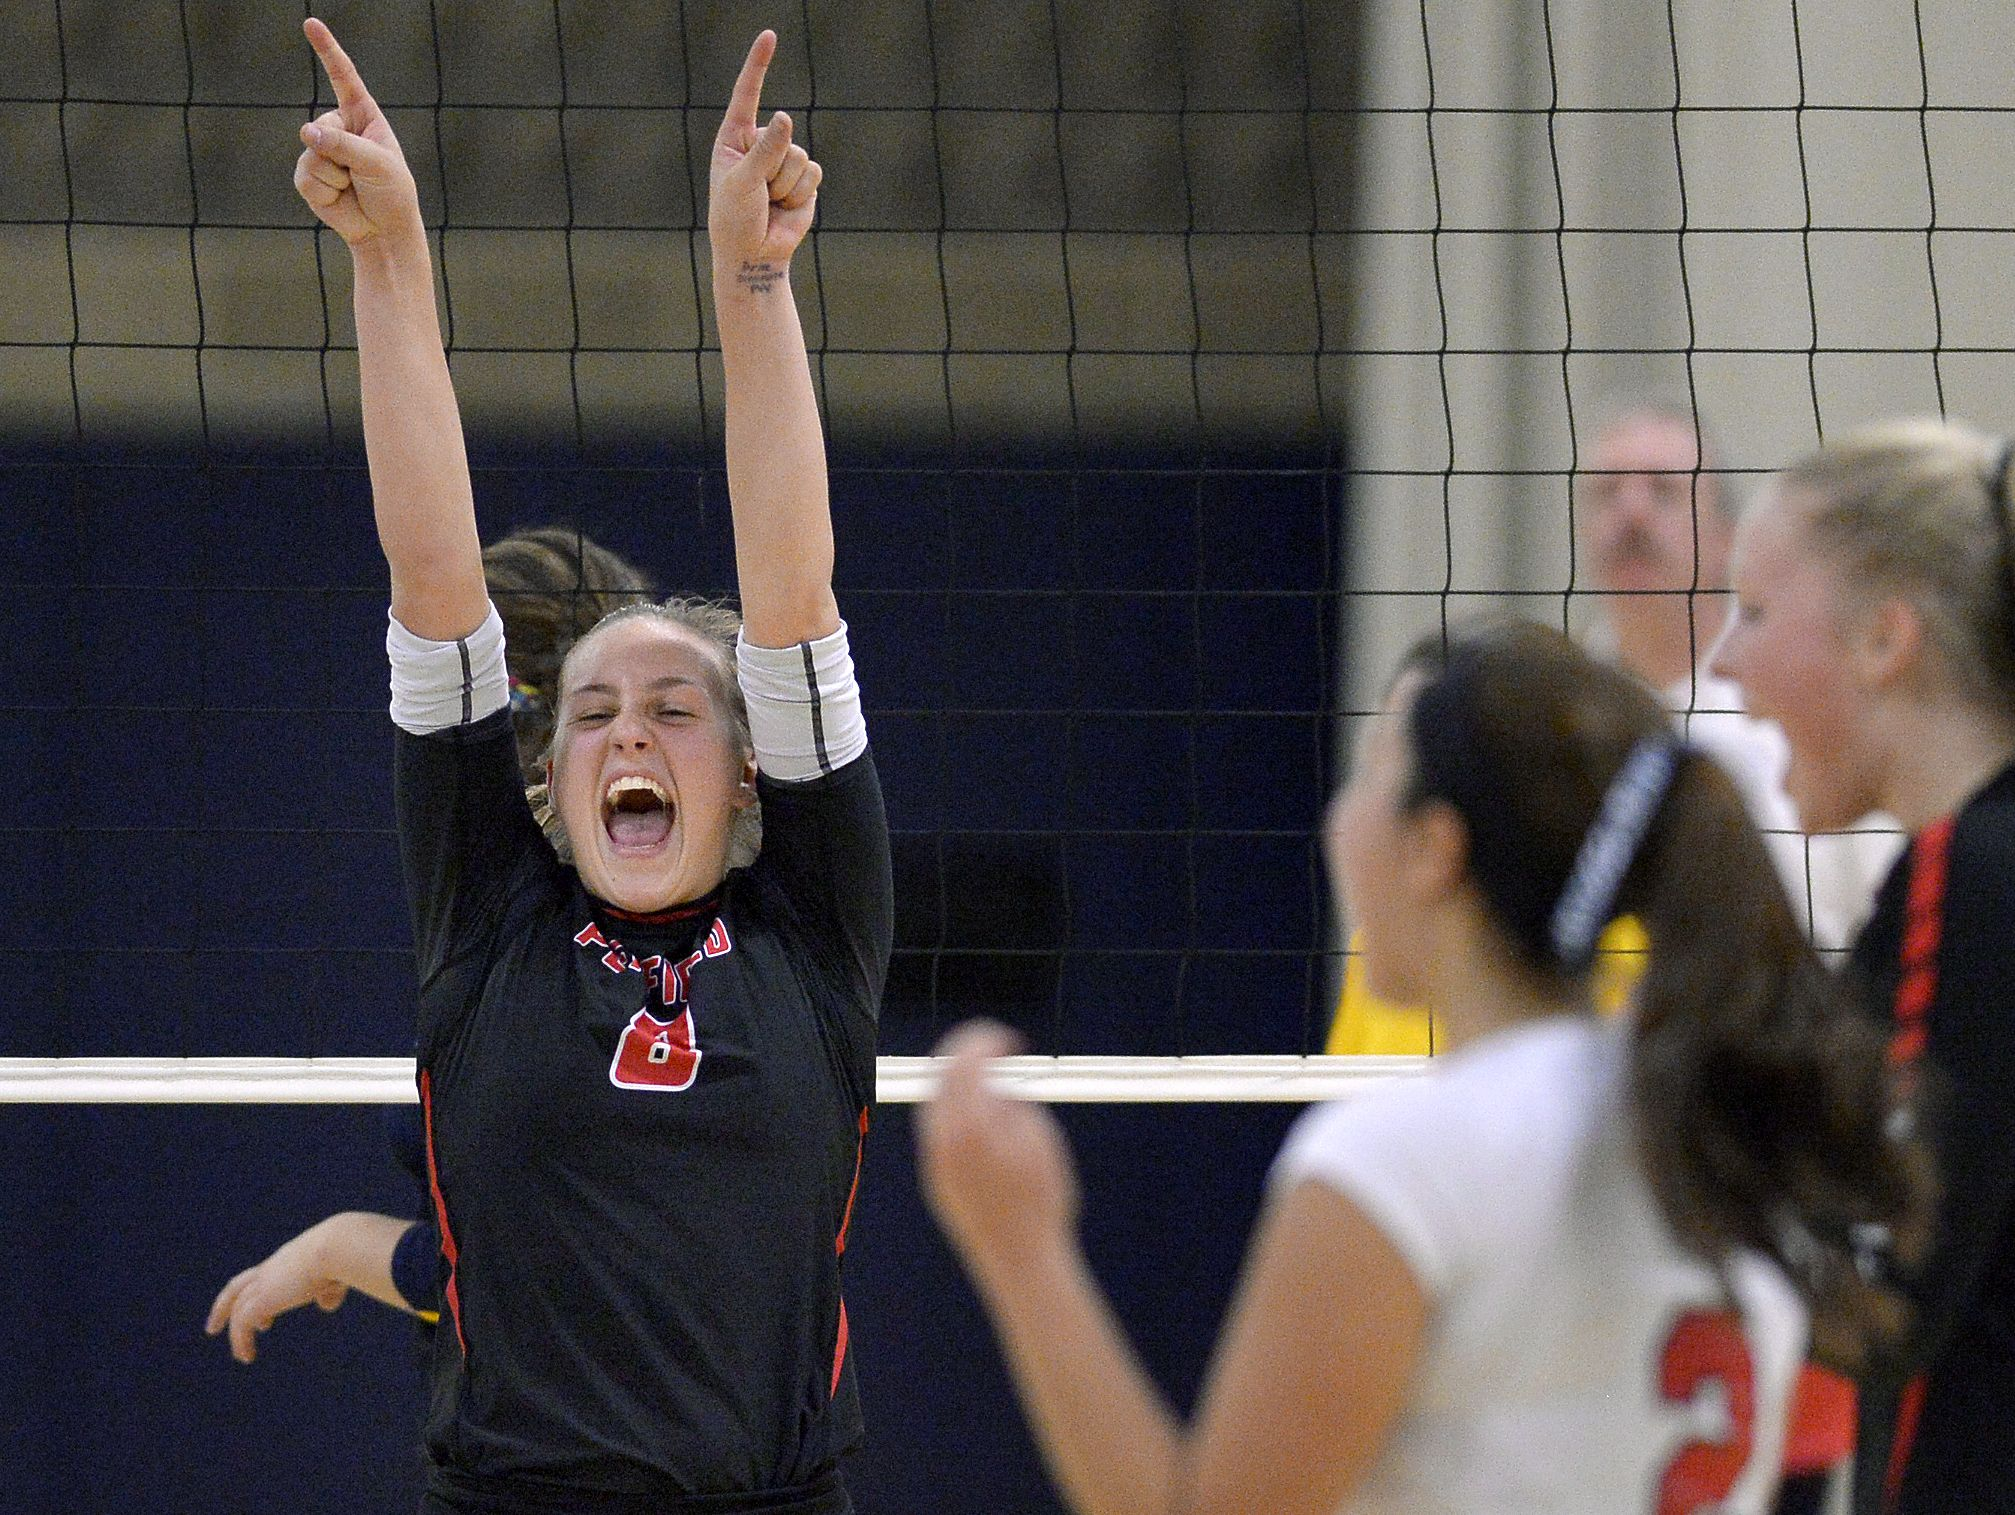 Penfield's Alea Steigerwald celebrates a point during the Section V Class AA final at Gates Chili High School on Nov. 4, 2016.